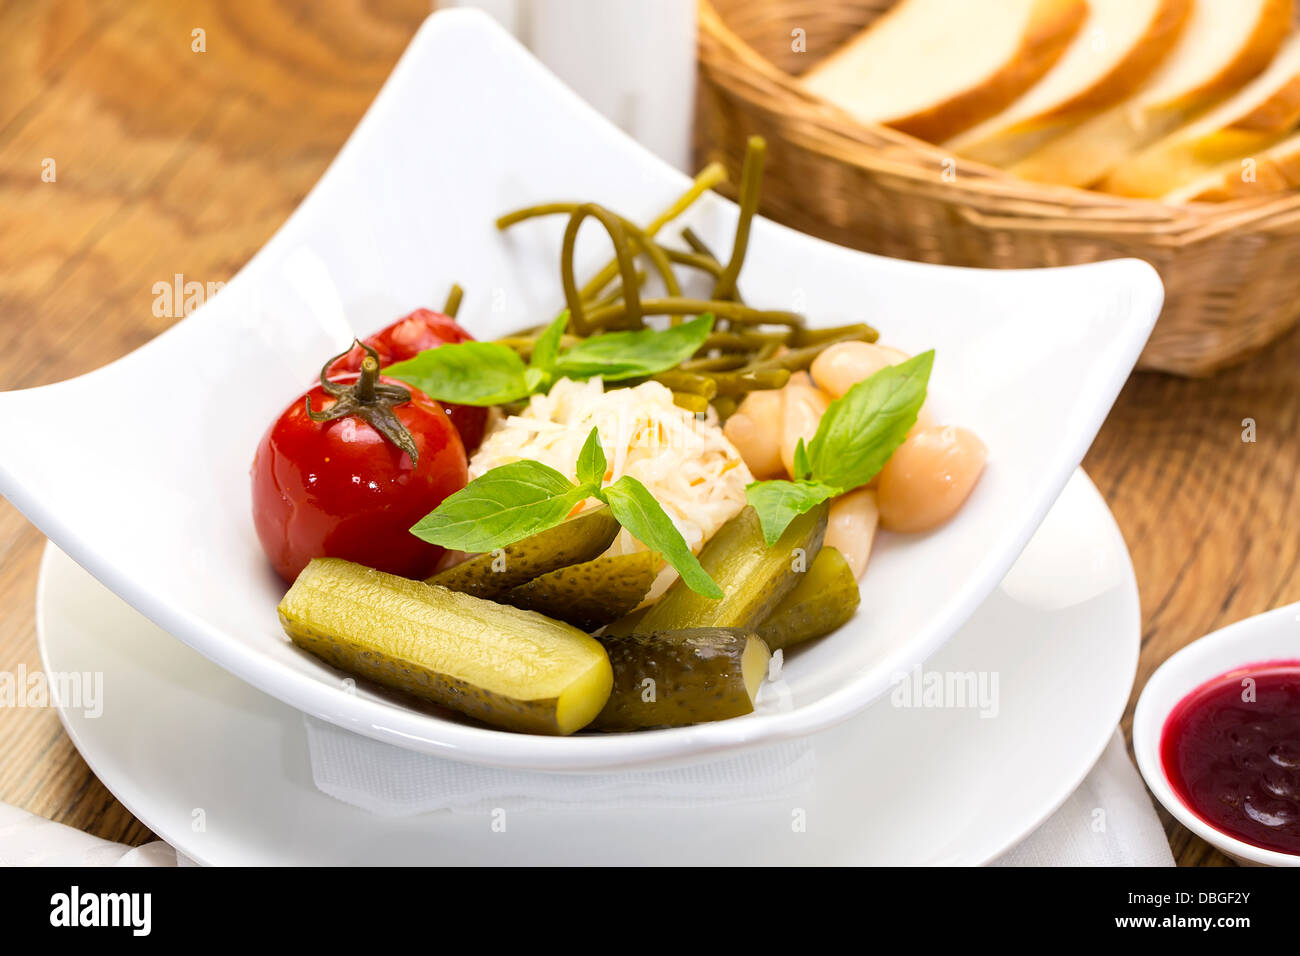 pickled vegetables, cucumber tomatoes asparagus and garlic cabbage Stock Photo